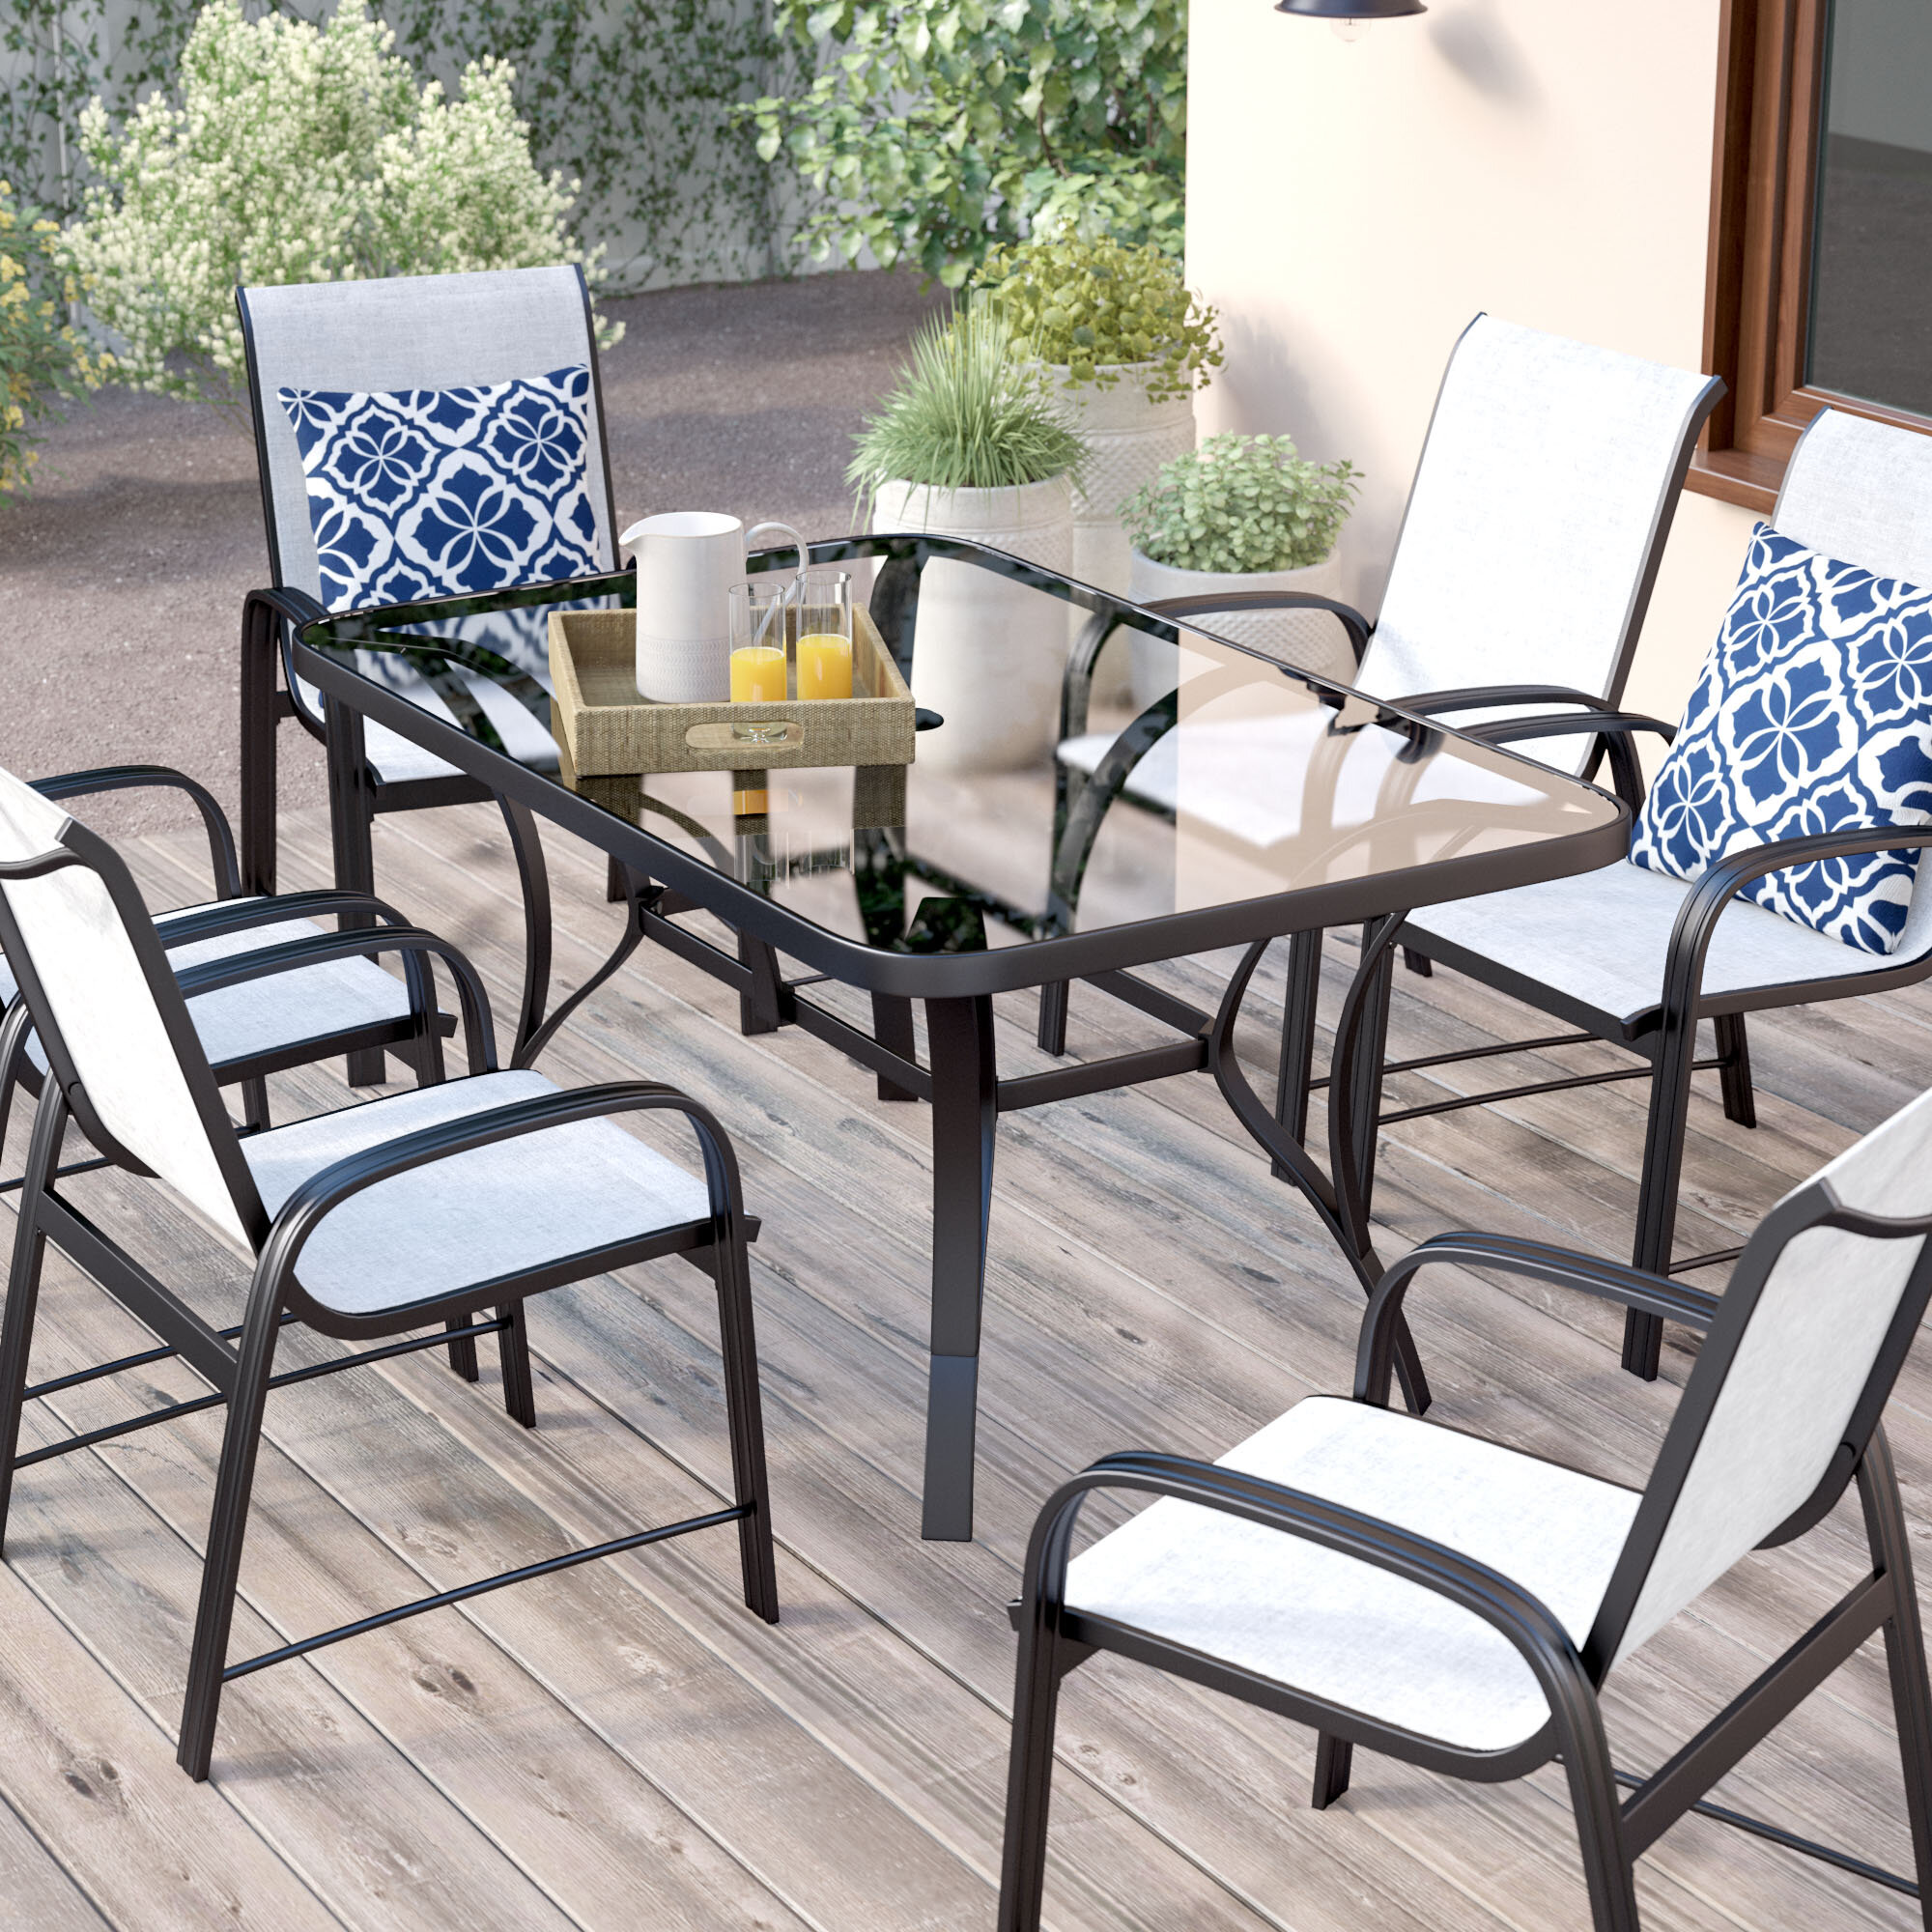 sets reviewing dining best reviews piece patio choose luxurious set and compare teak the outdoor